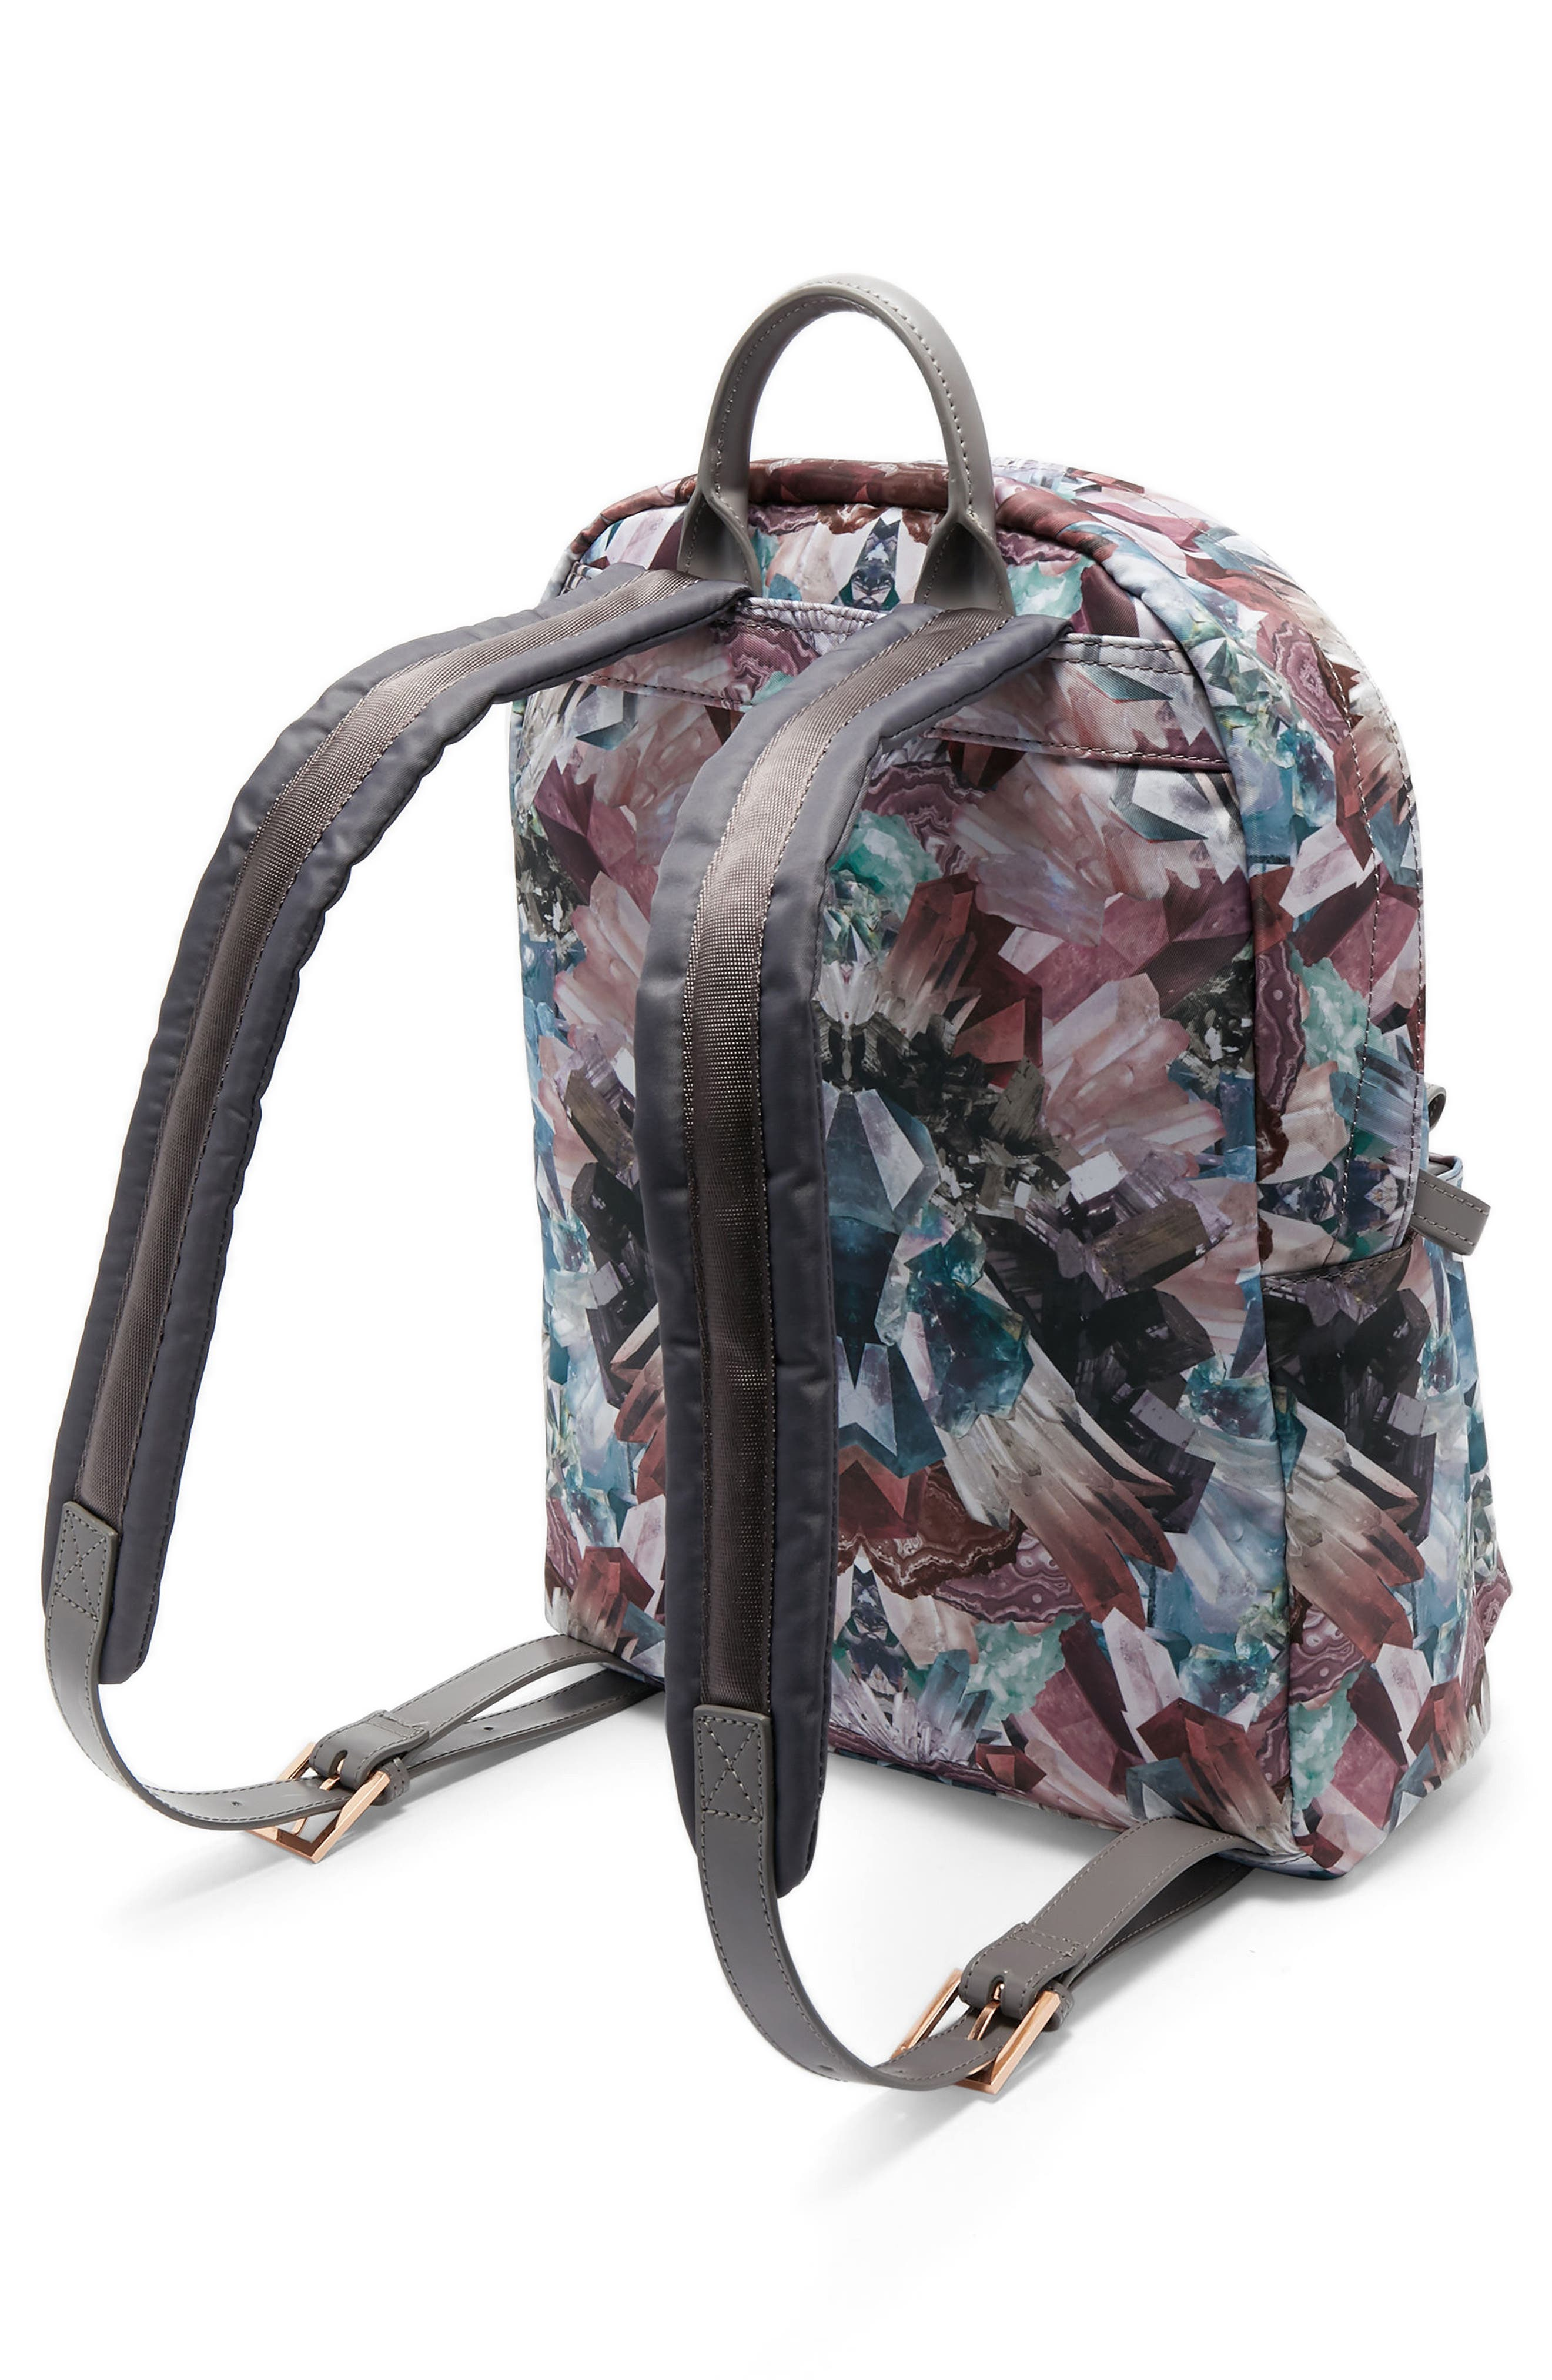 Minerals Print Backpack,                             Alternate thumbnail 2, color,                             021